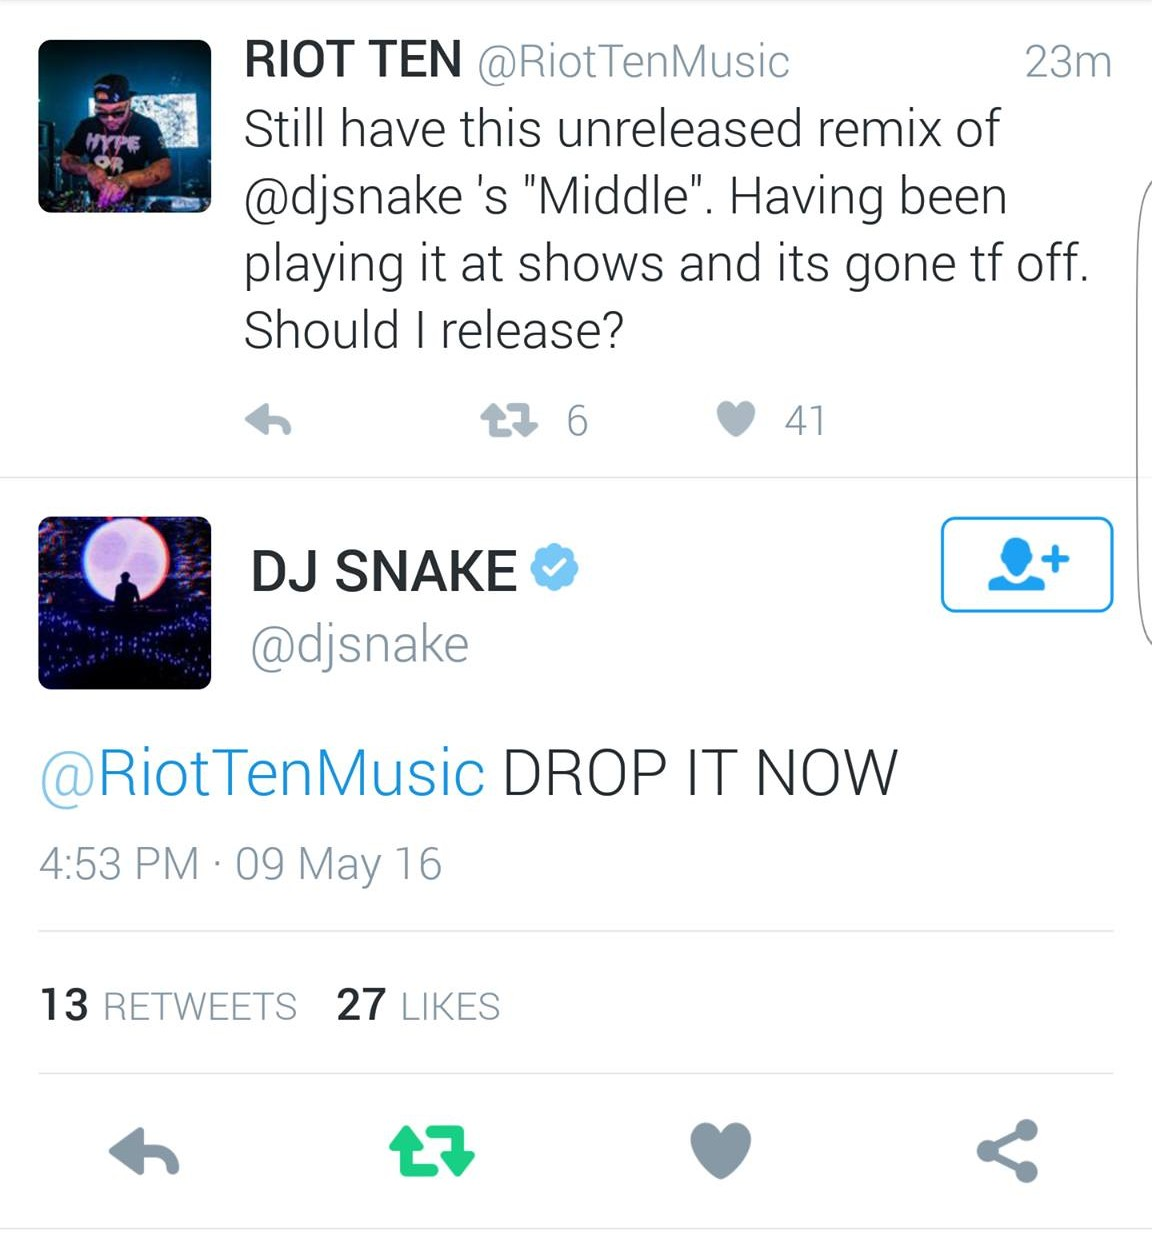 dj snake riot ten middle remix twitter